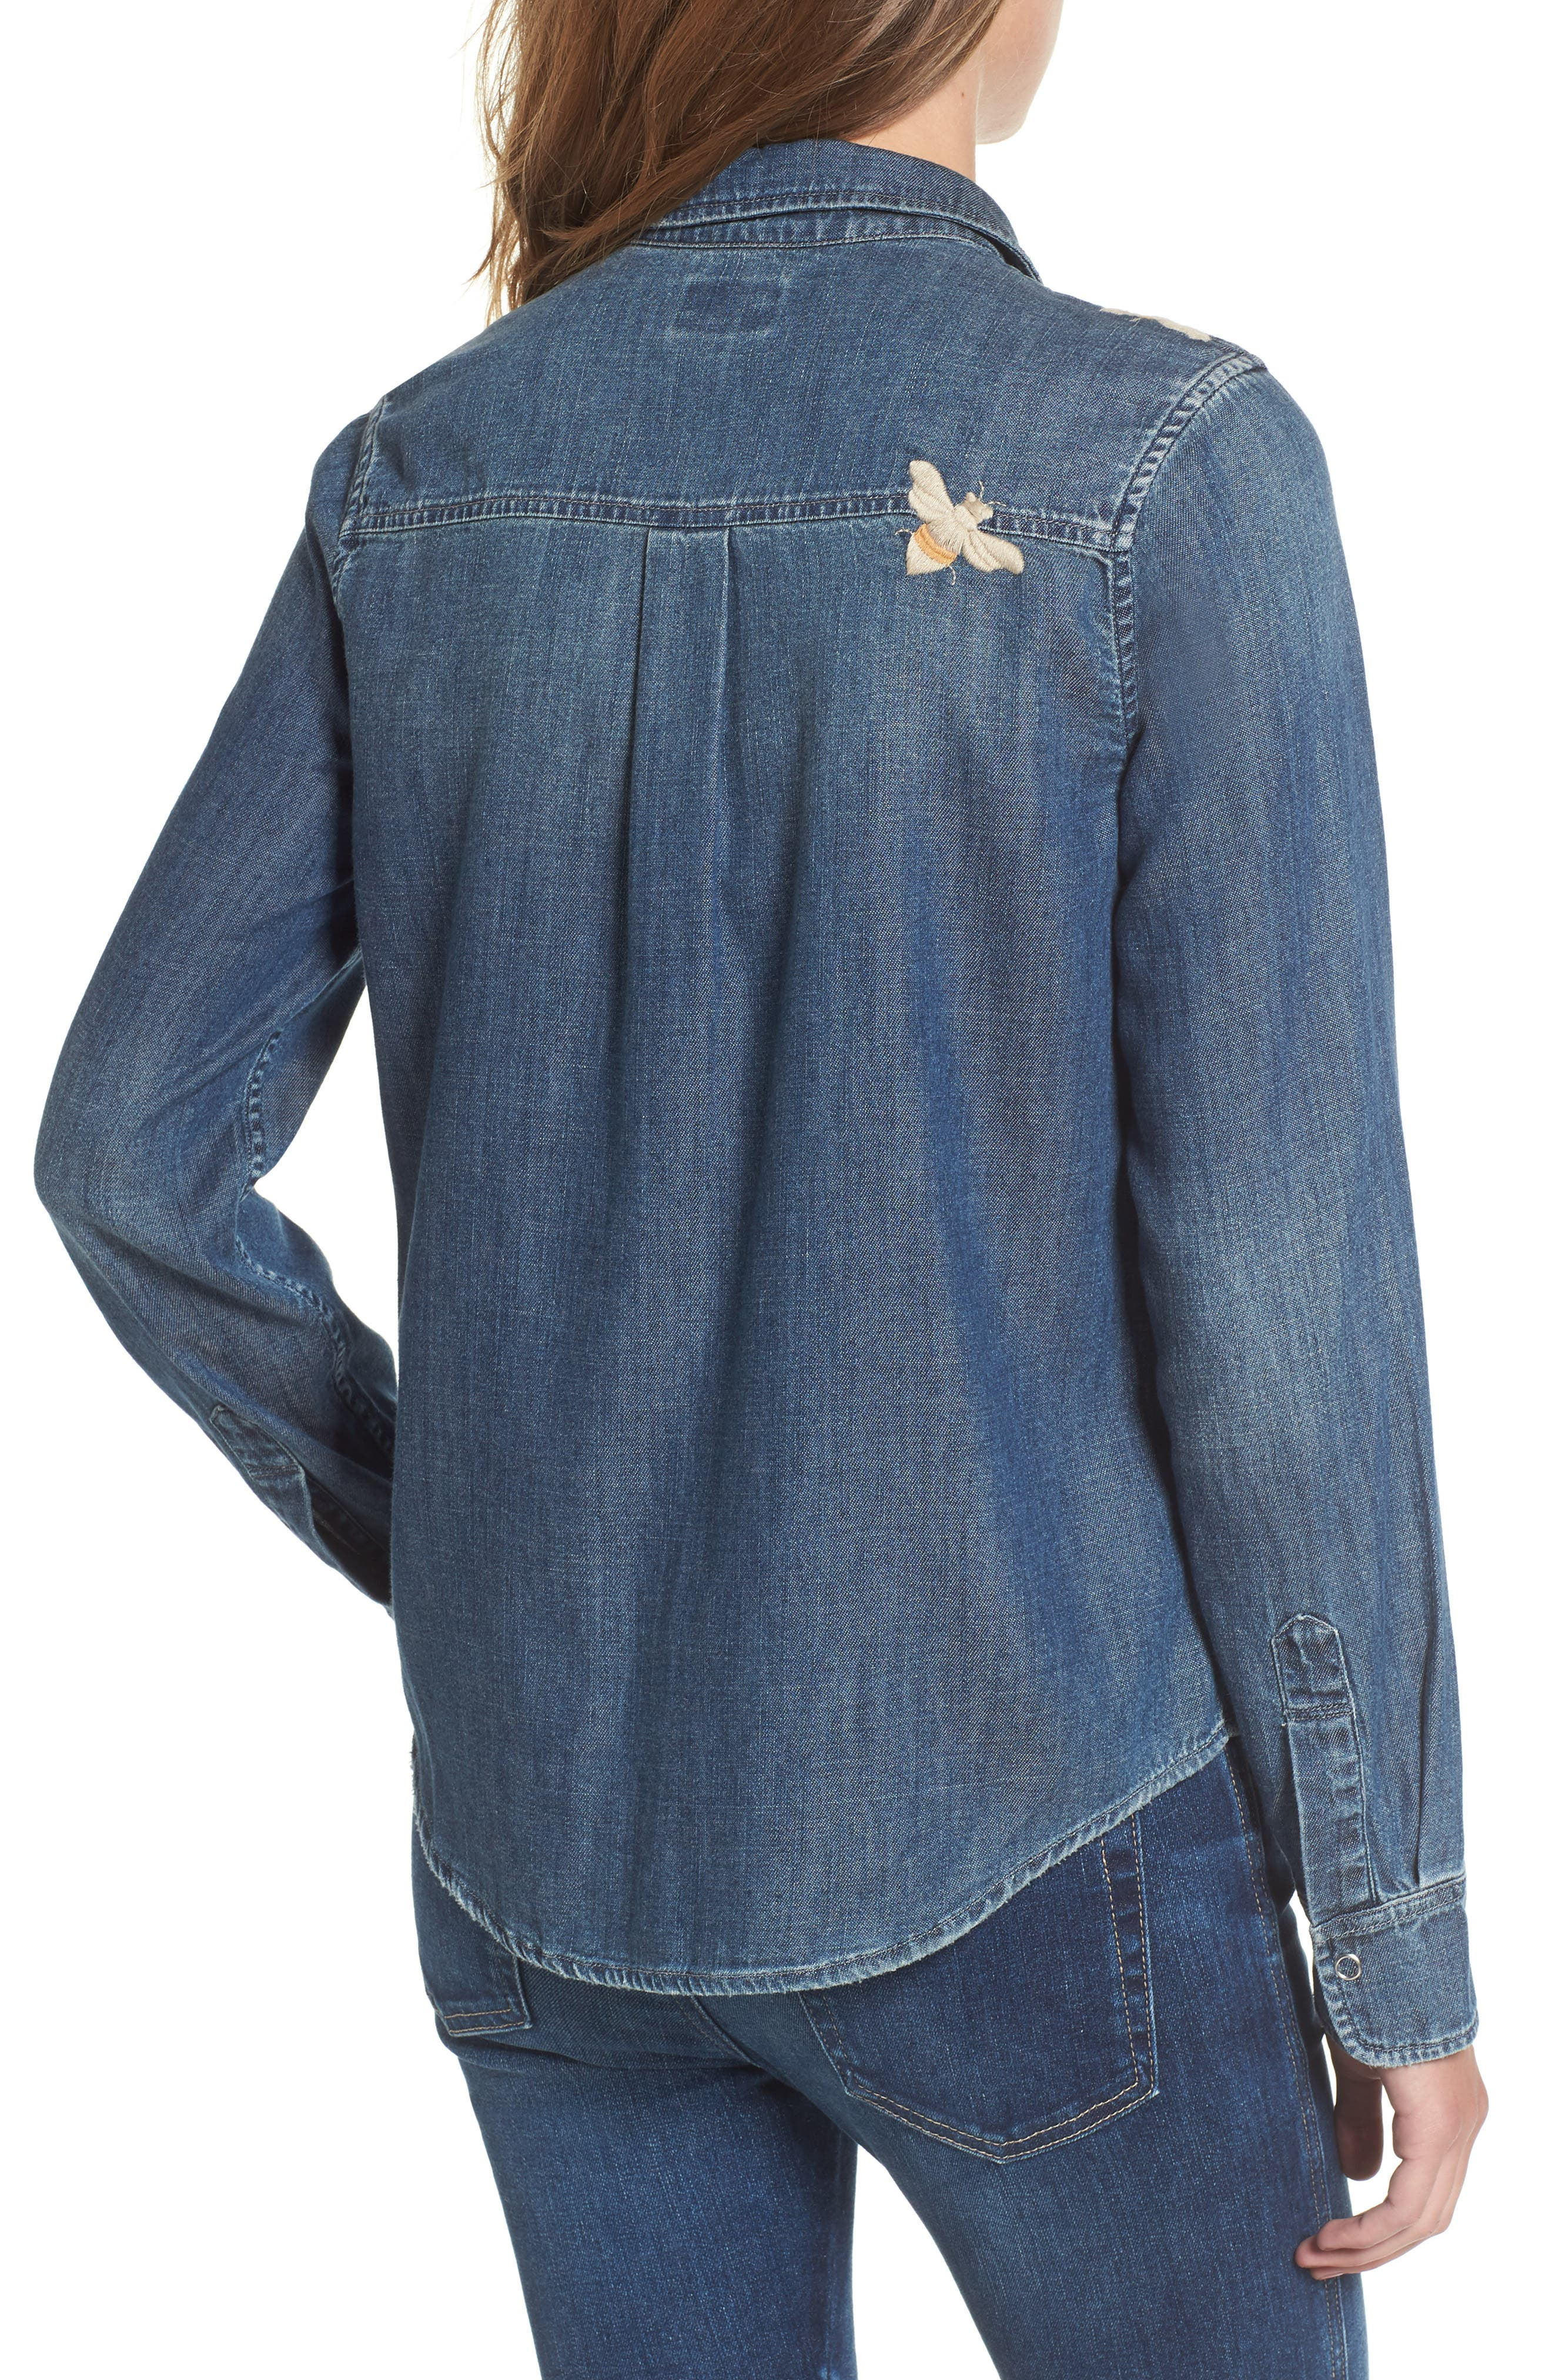 Joanna Embroidered Denim Shirt,                             Alternate thumbnail 2, color,                             West Coast Embroidered